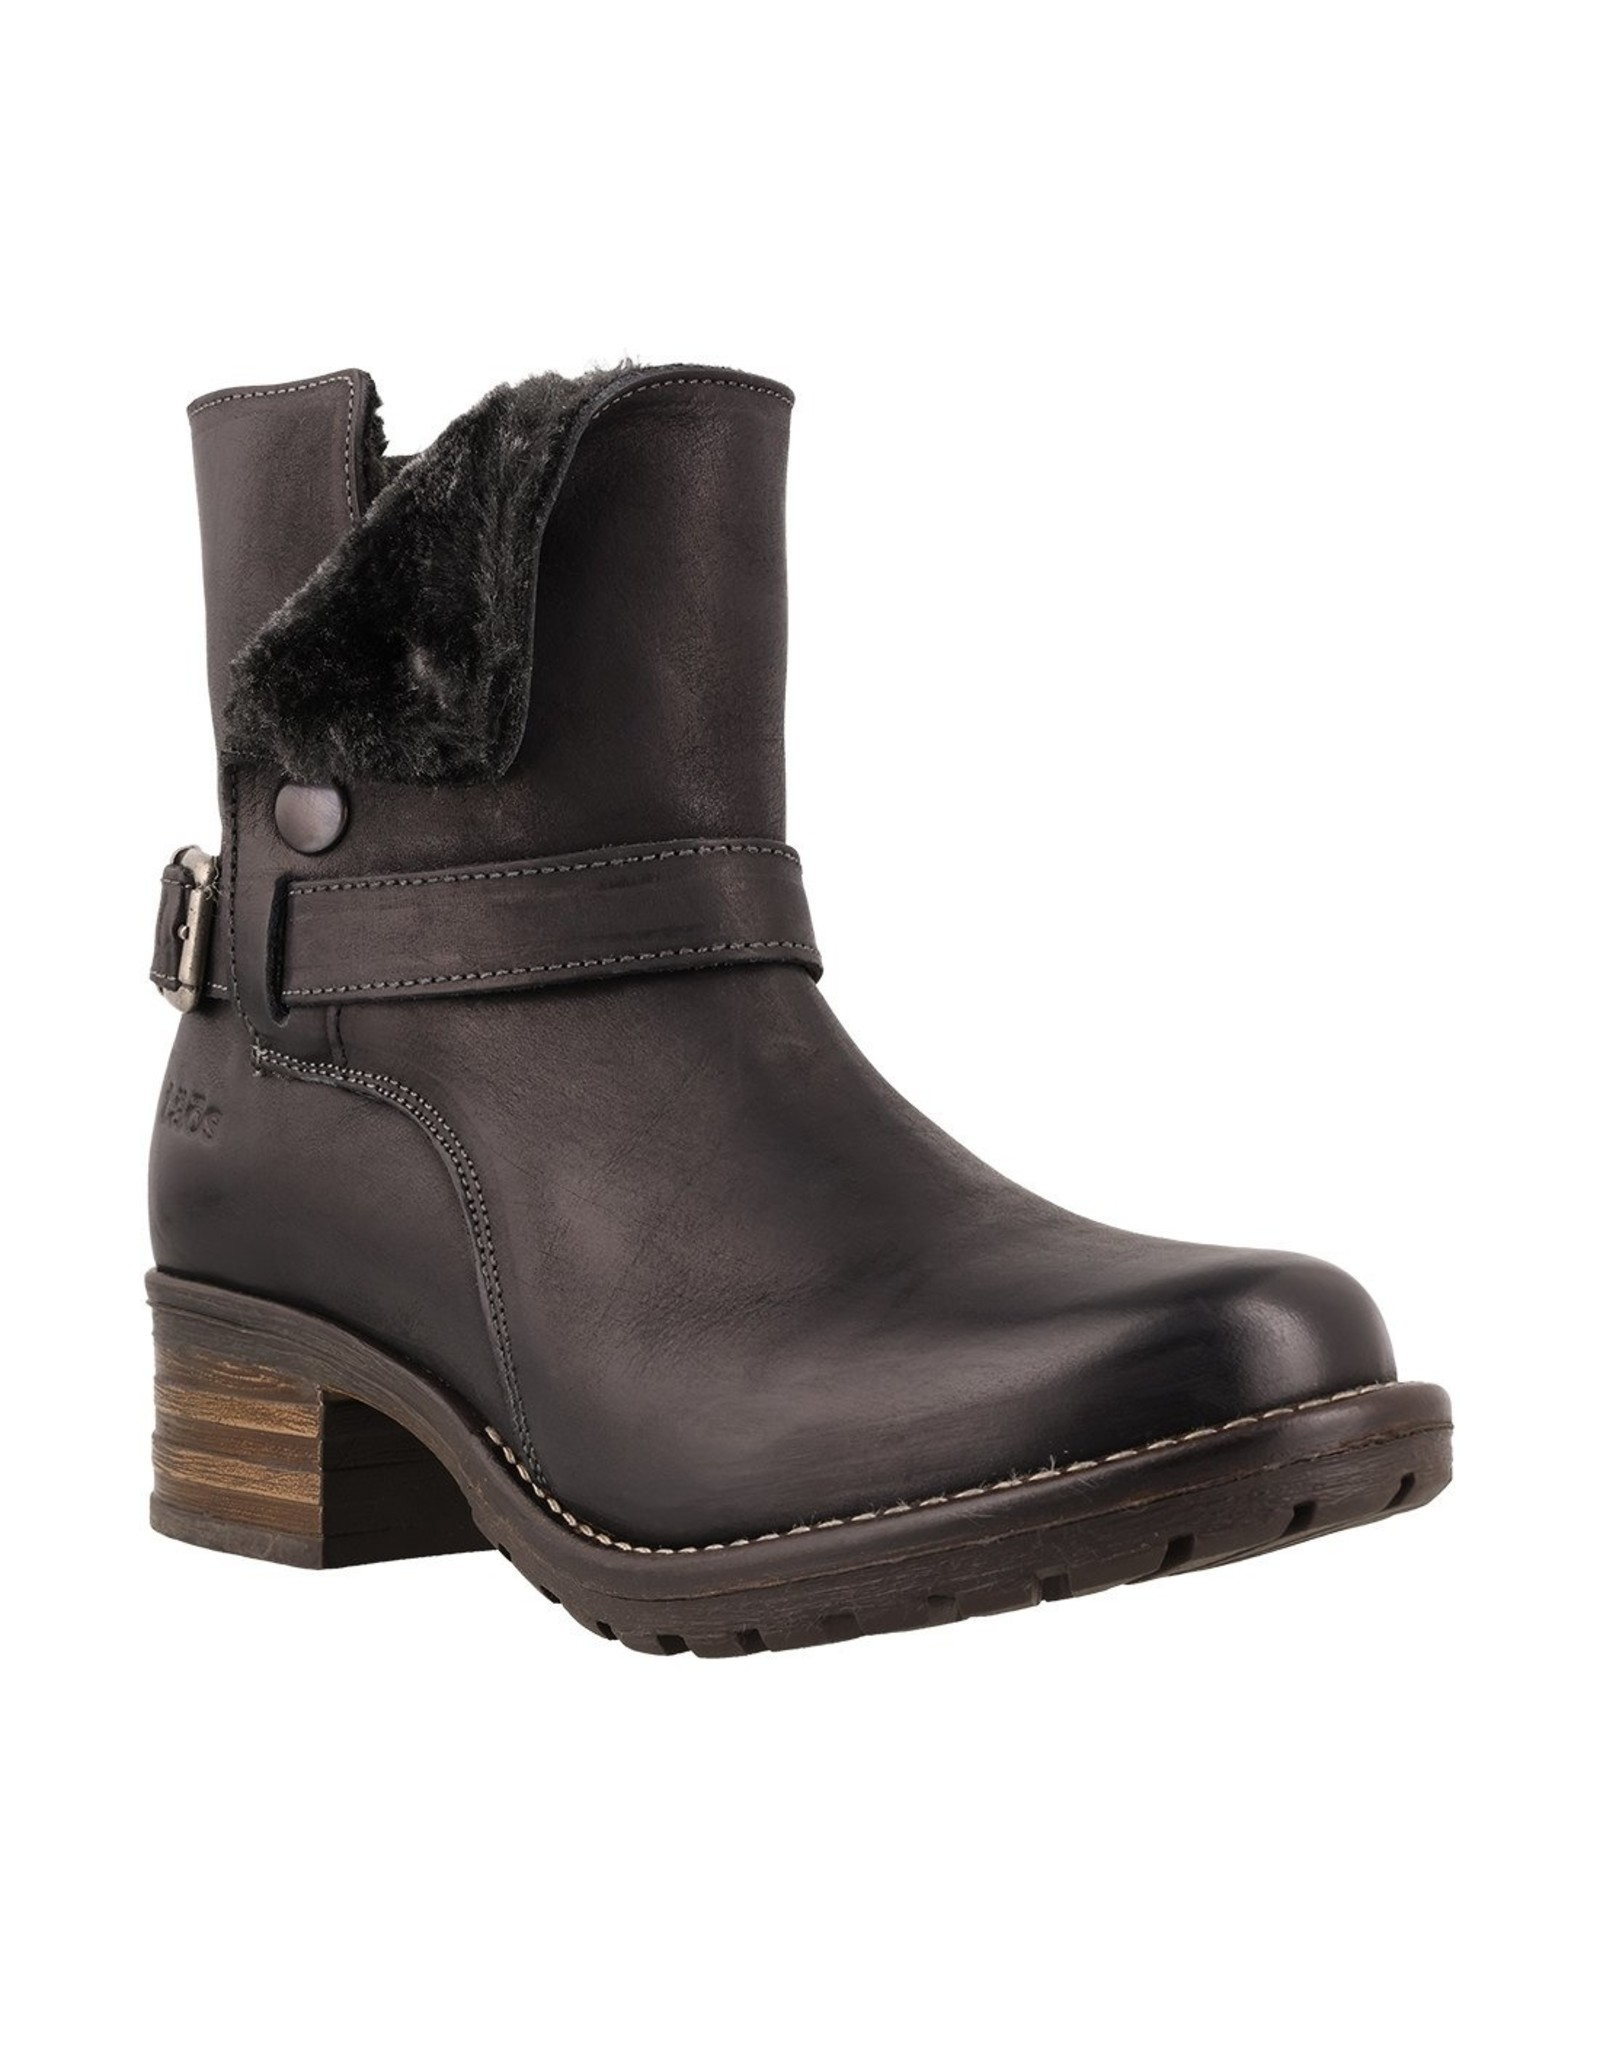 TAOS WOMEN'S COMBO LEATHER BOOT-BLACK